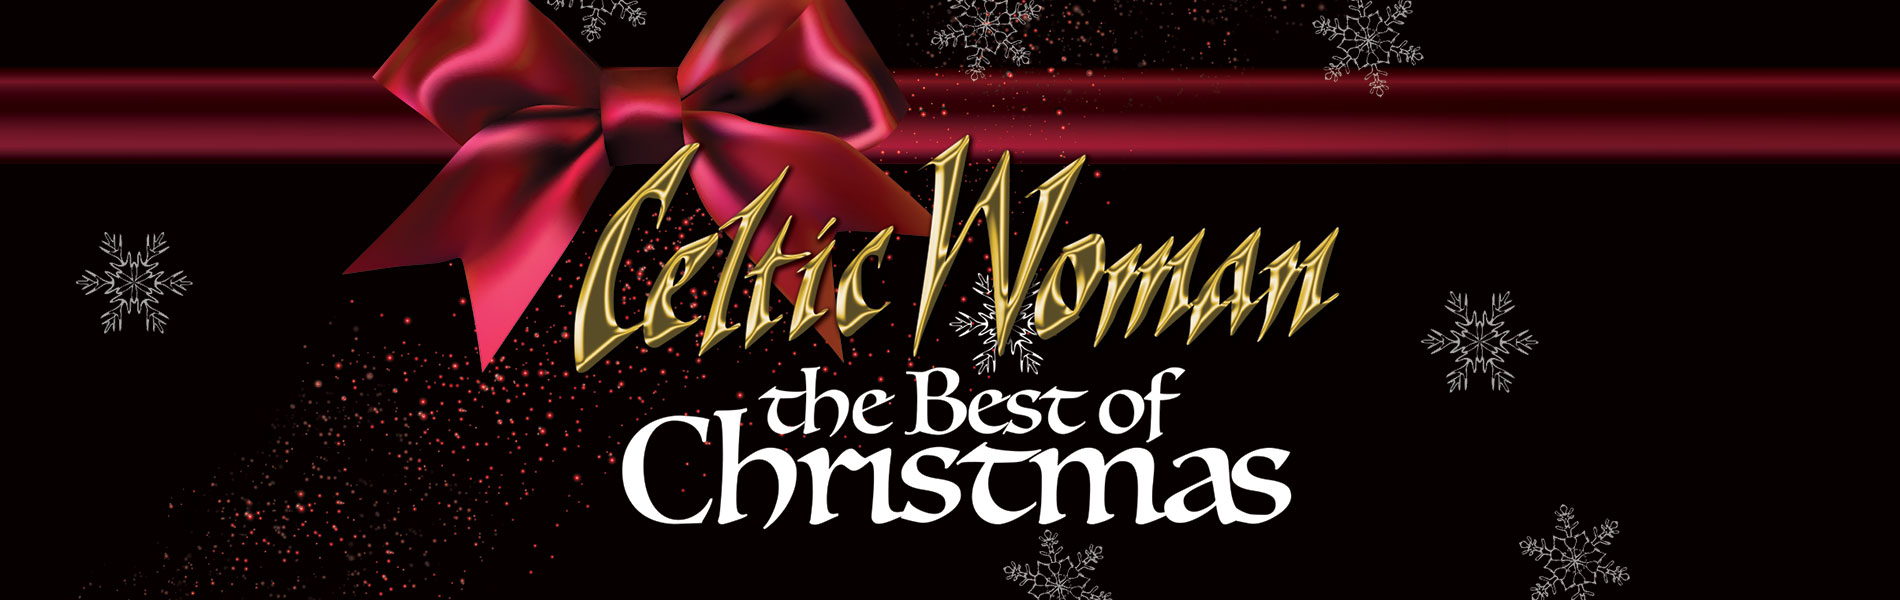 Celtic Woman Christmas 2020 Celtic Woman: The Best of Christmas with the Oregon Symphony | Nov. 30